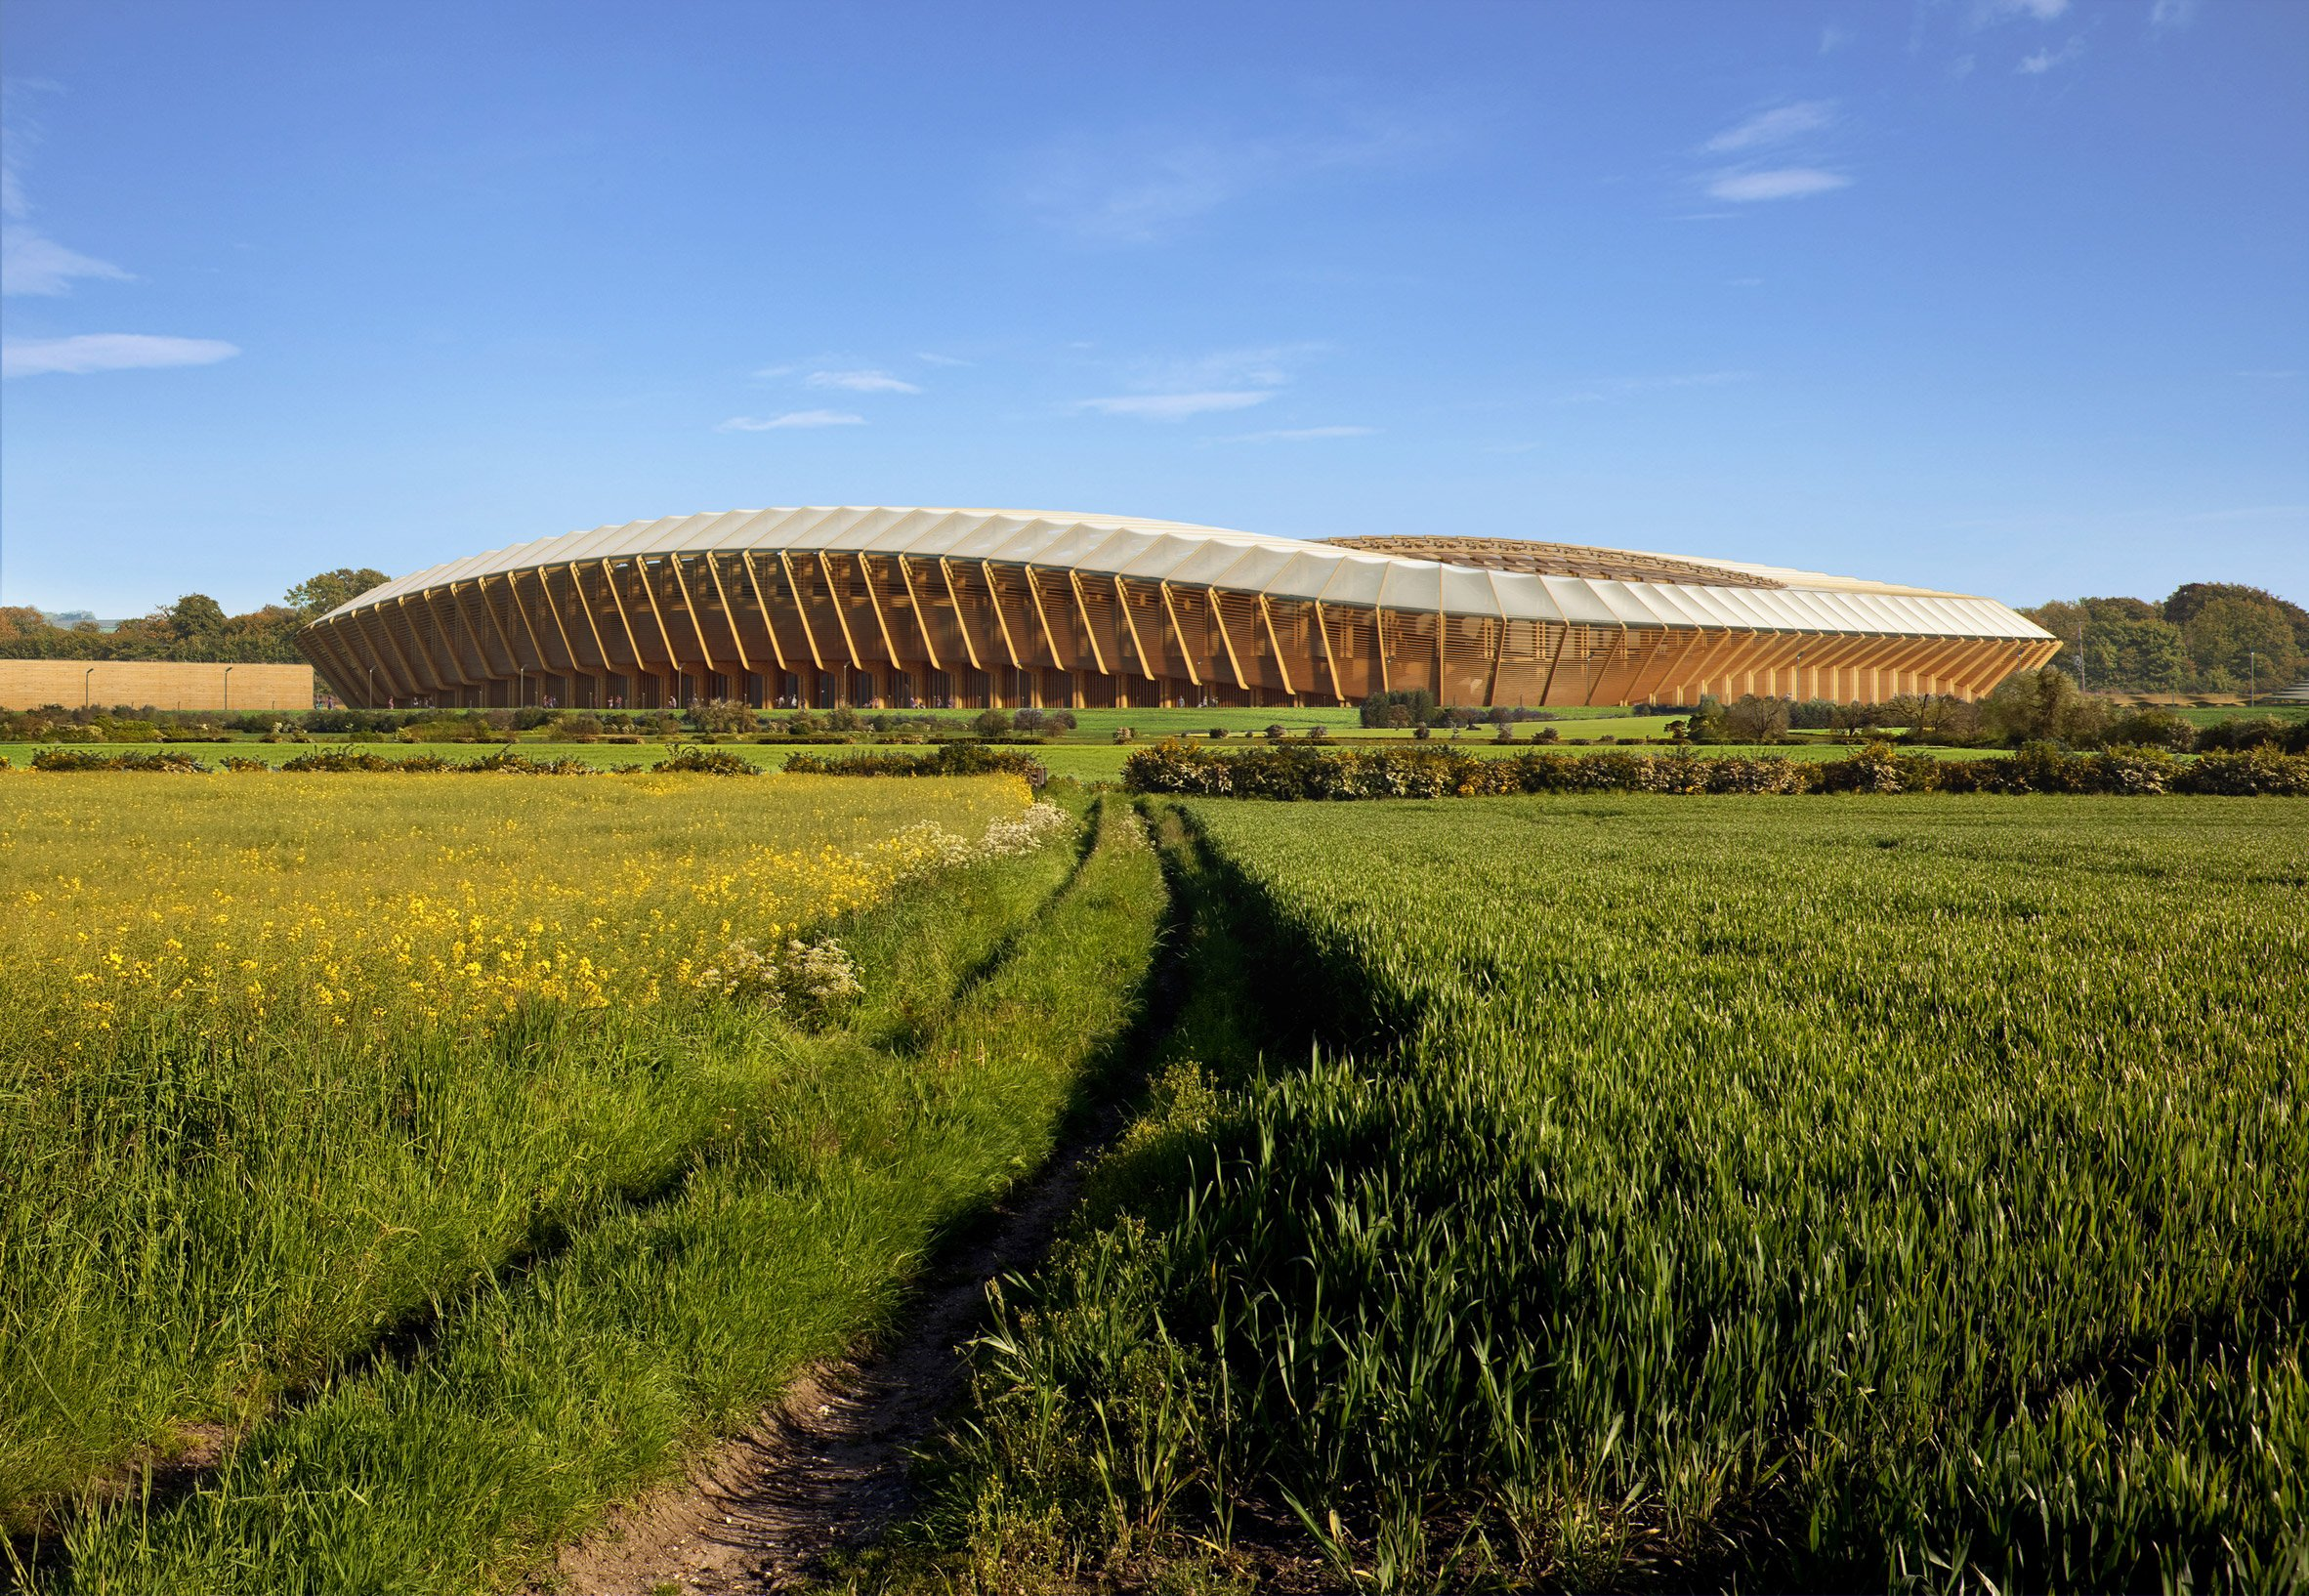 Image downloaded from https://static.dezeen.com/uploads/2016/11/forest-green-rovers-eco-park-football-soccer-stadium-architecture-news-zaha-hadid-architects-stroud-gloucestershire-england-uk_dezeen_2364_col_4.jpg